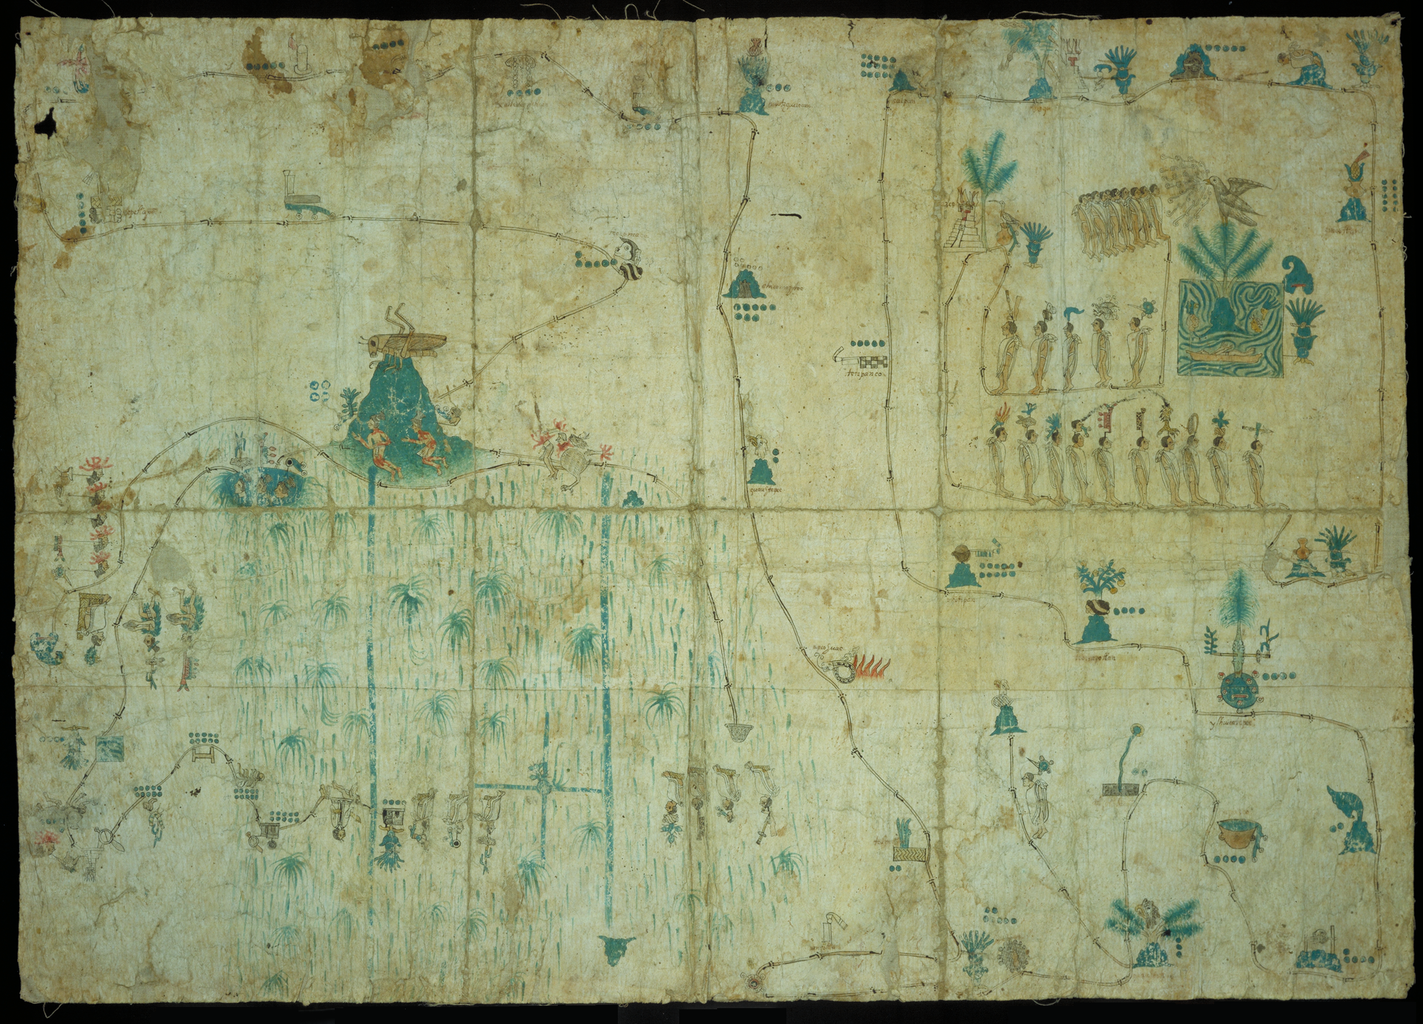 Mapping the americas teaching the globe native mesoamerican map from the late sixteenth century depicting the culhua mexicas on their way from their homeland of aztlan to the valley of mexico sciox Images